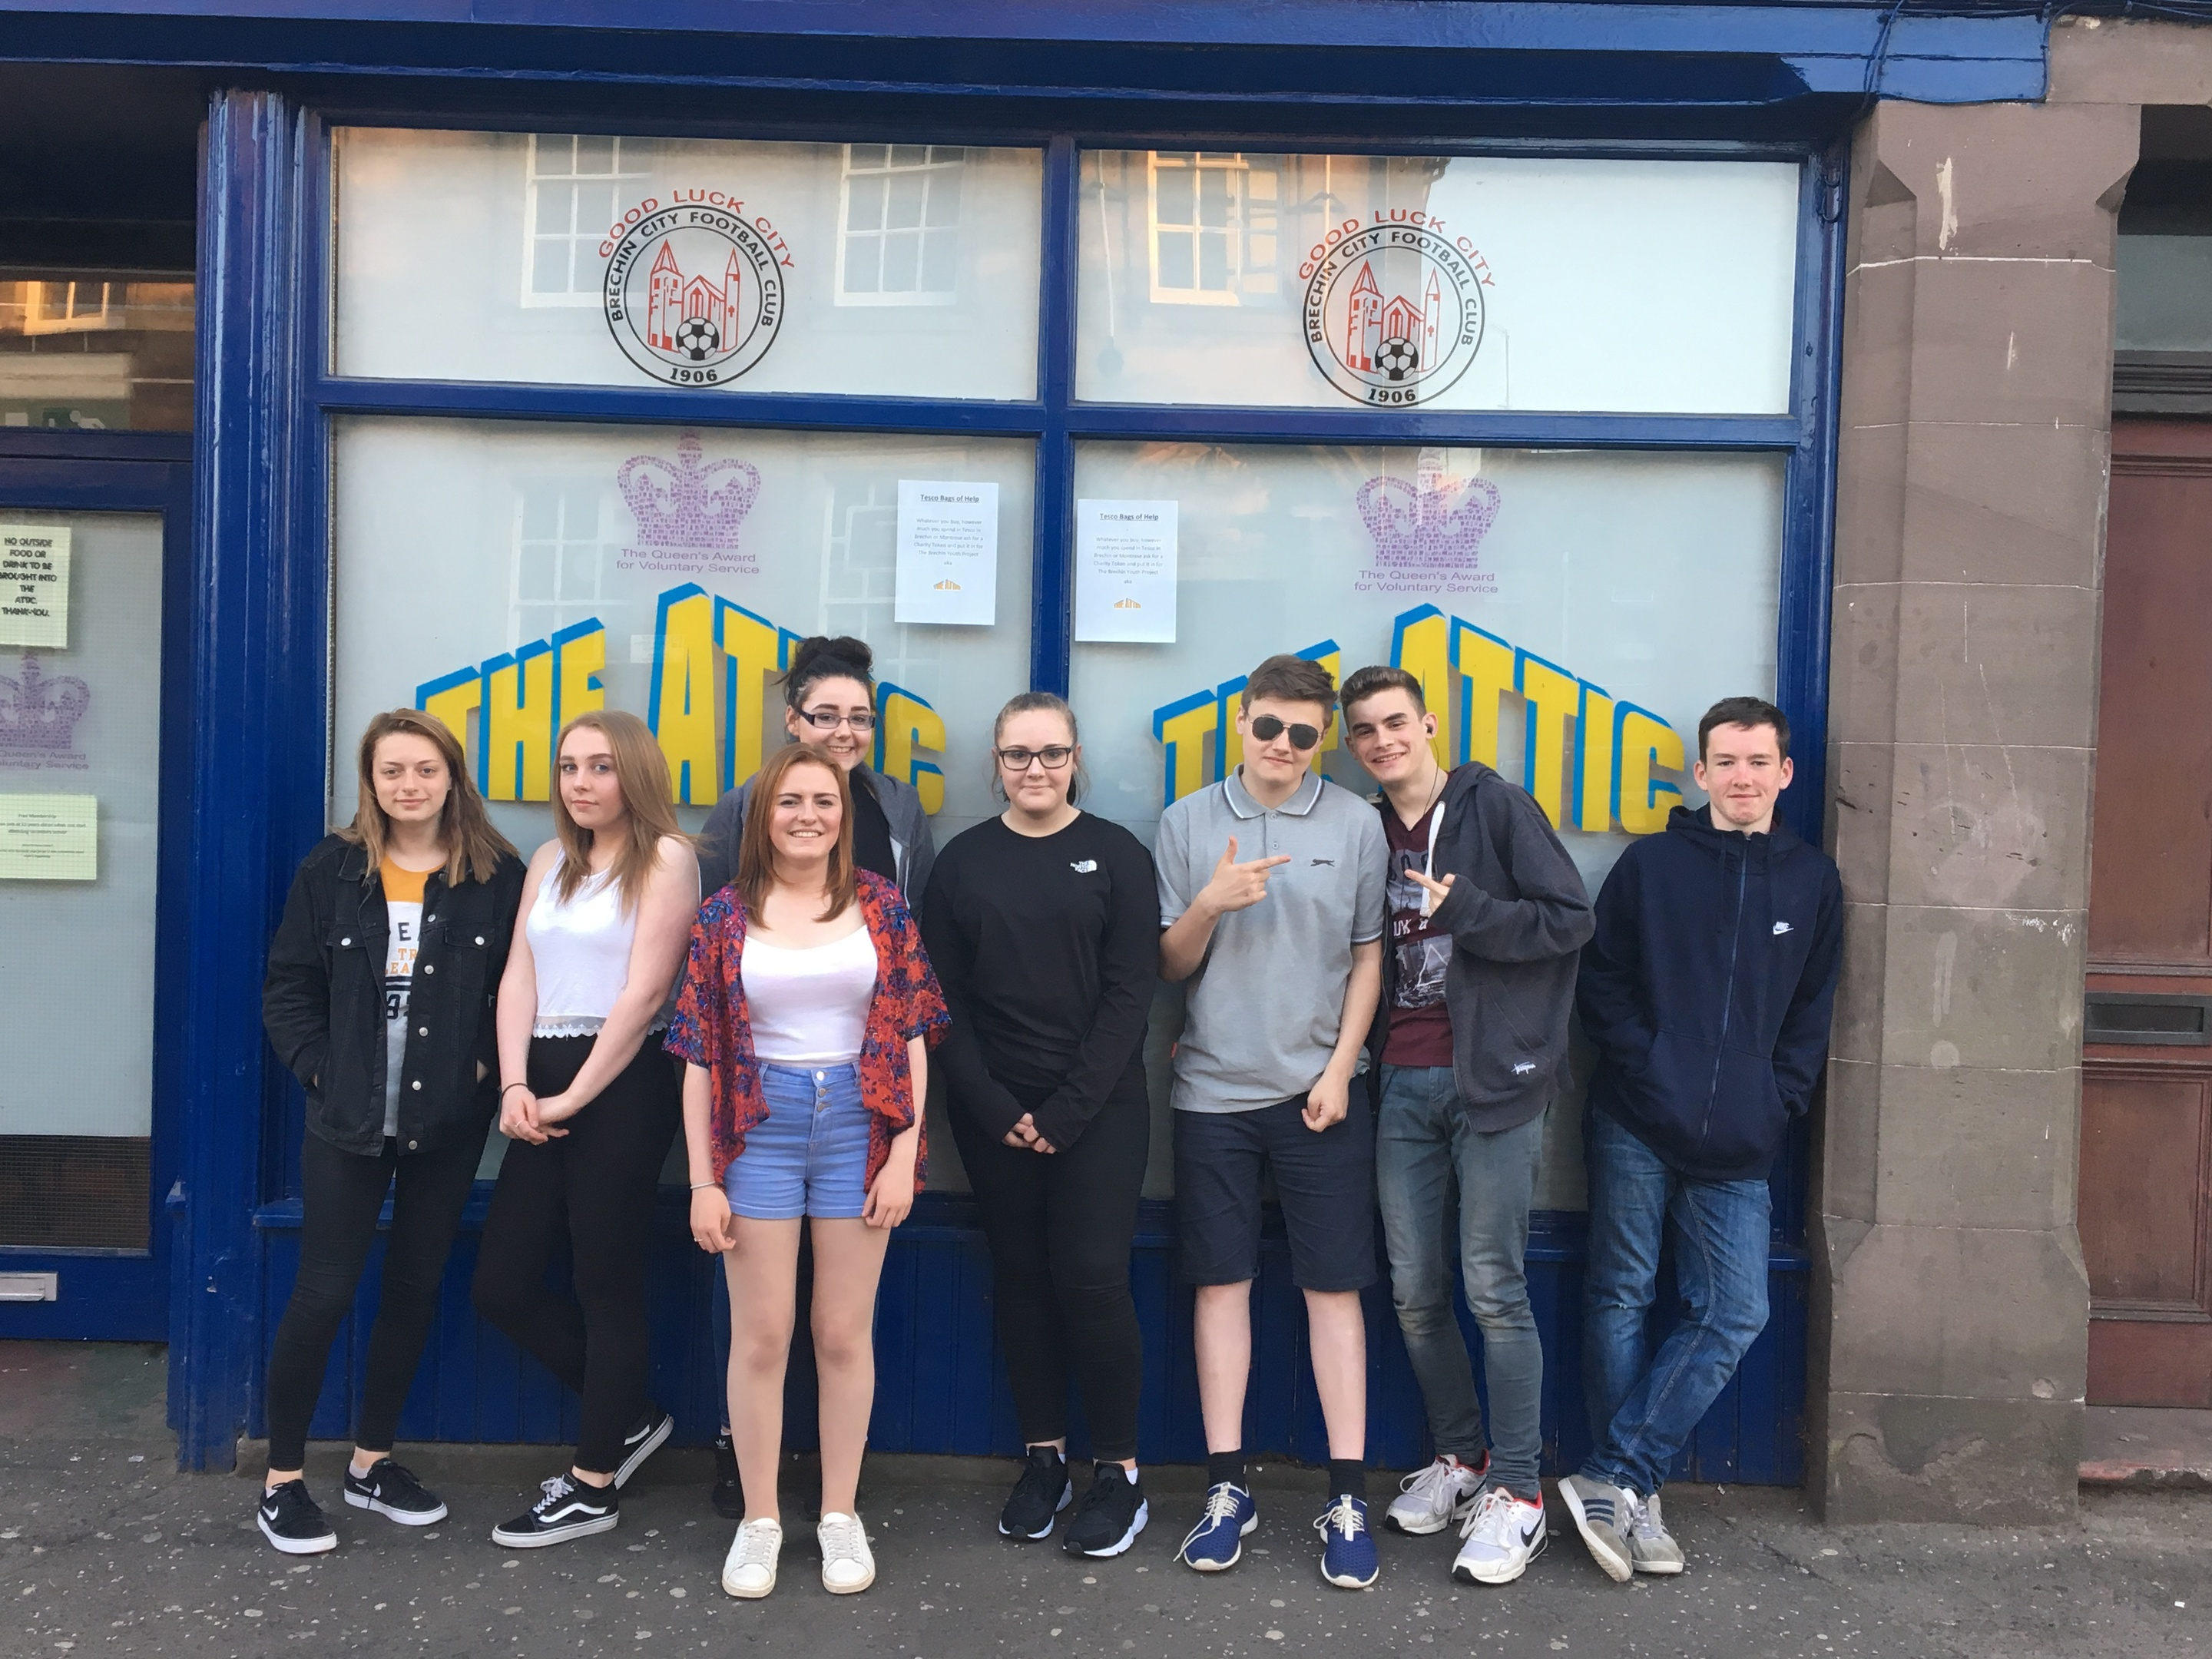 Youngsters from the Attic in Brechin are among those who will benefit.